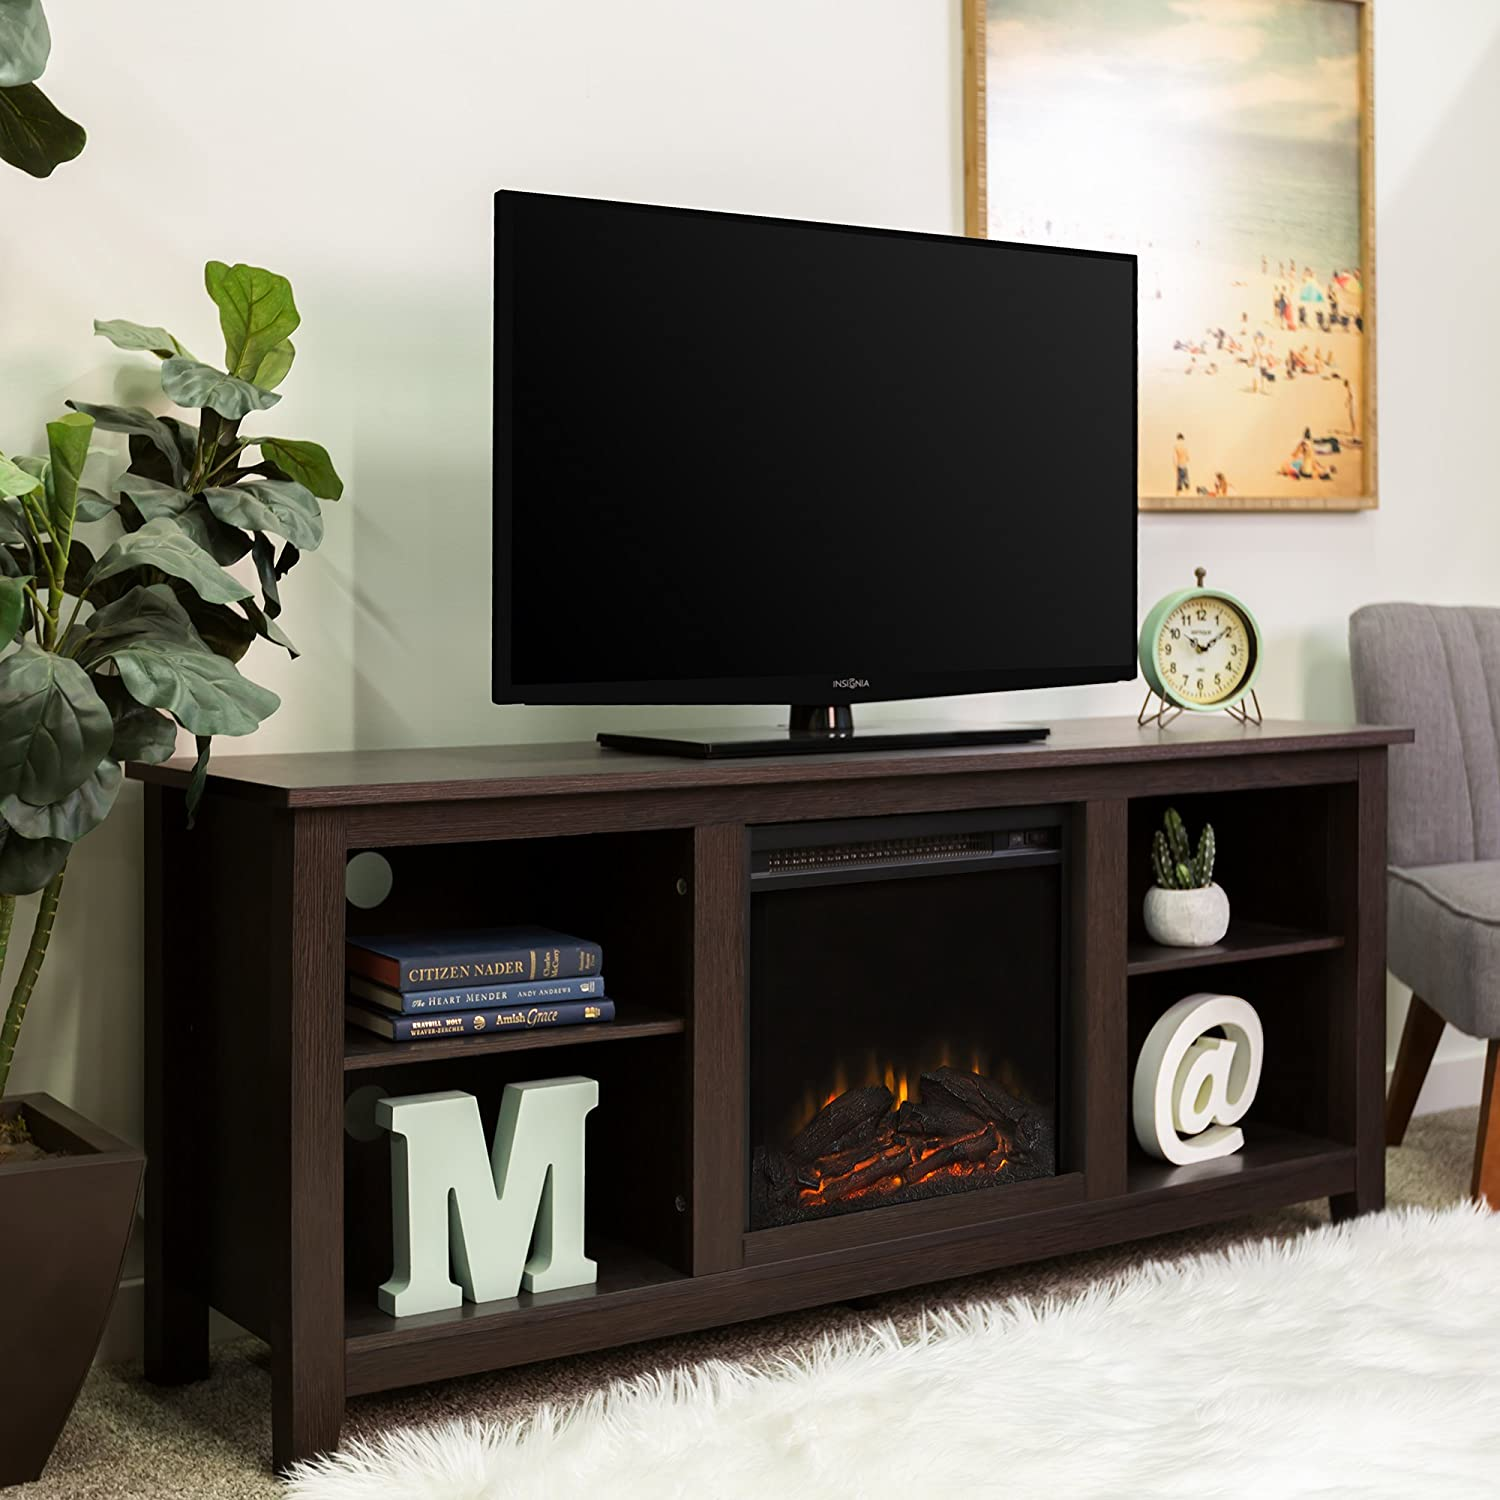 Corner fireplace with your hands: step-by-step instruction (photo)